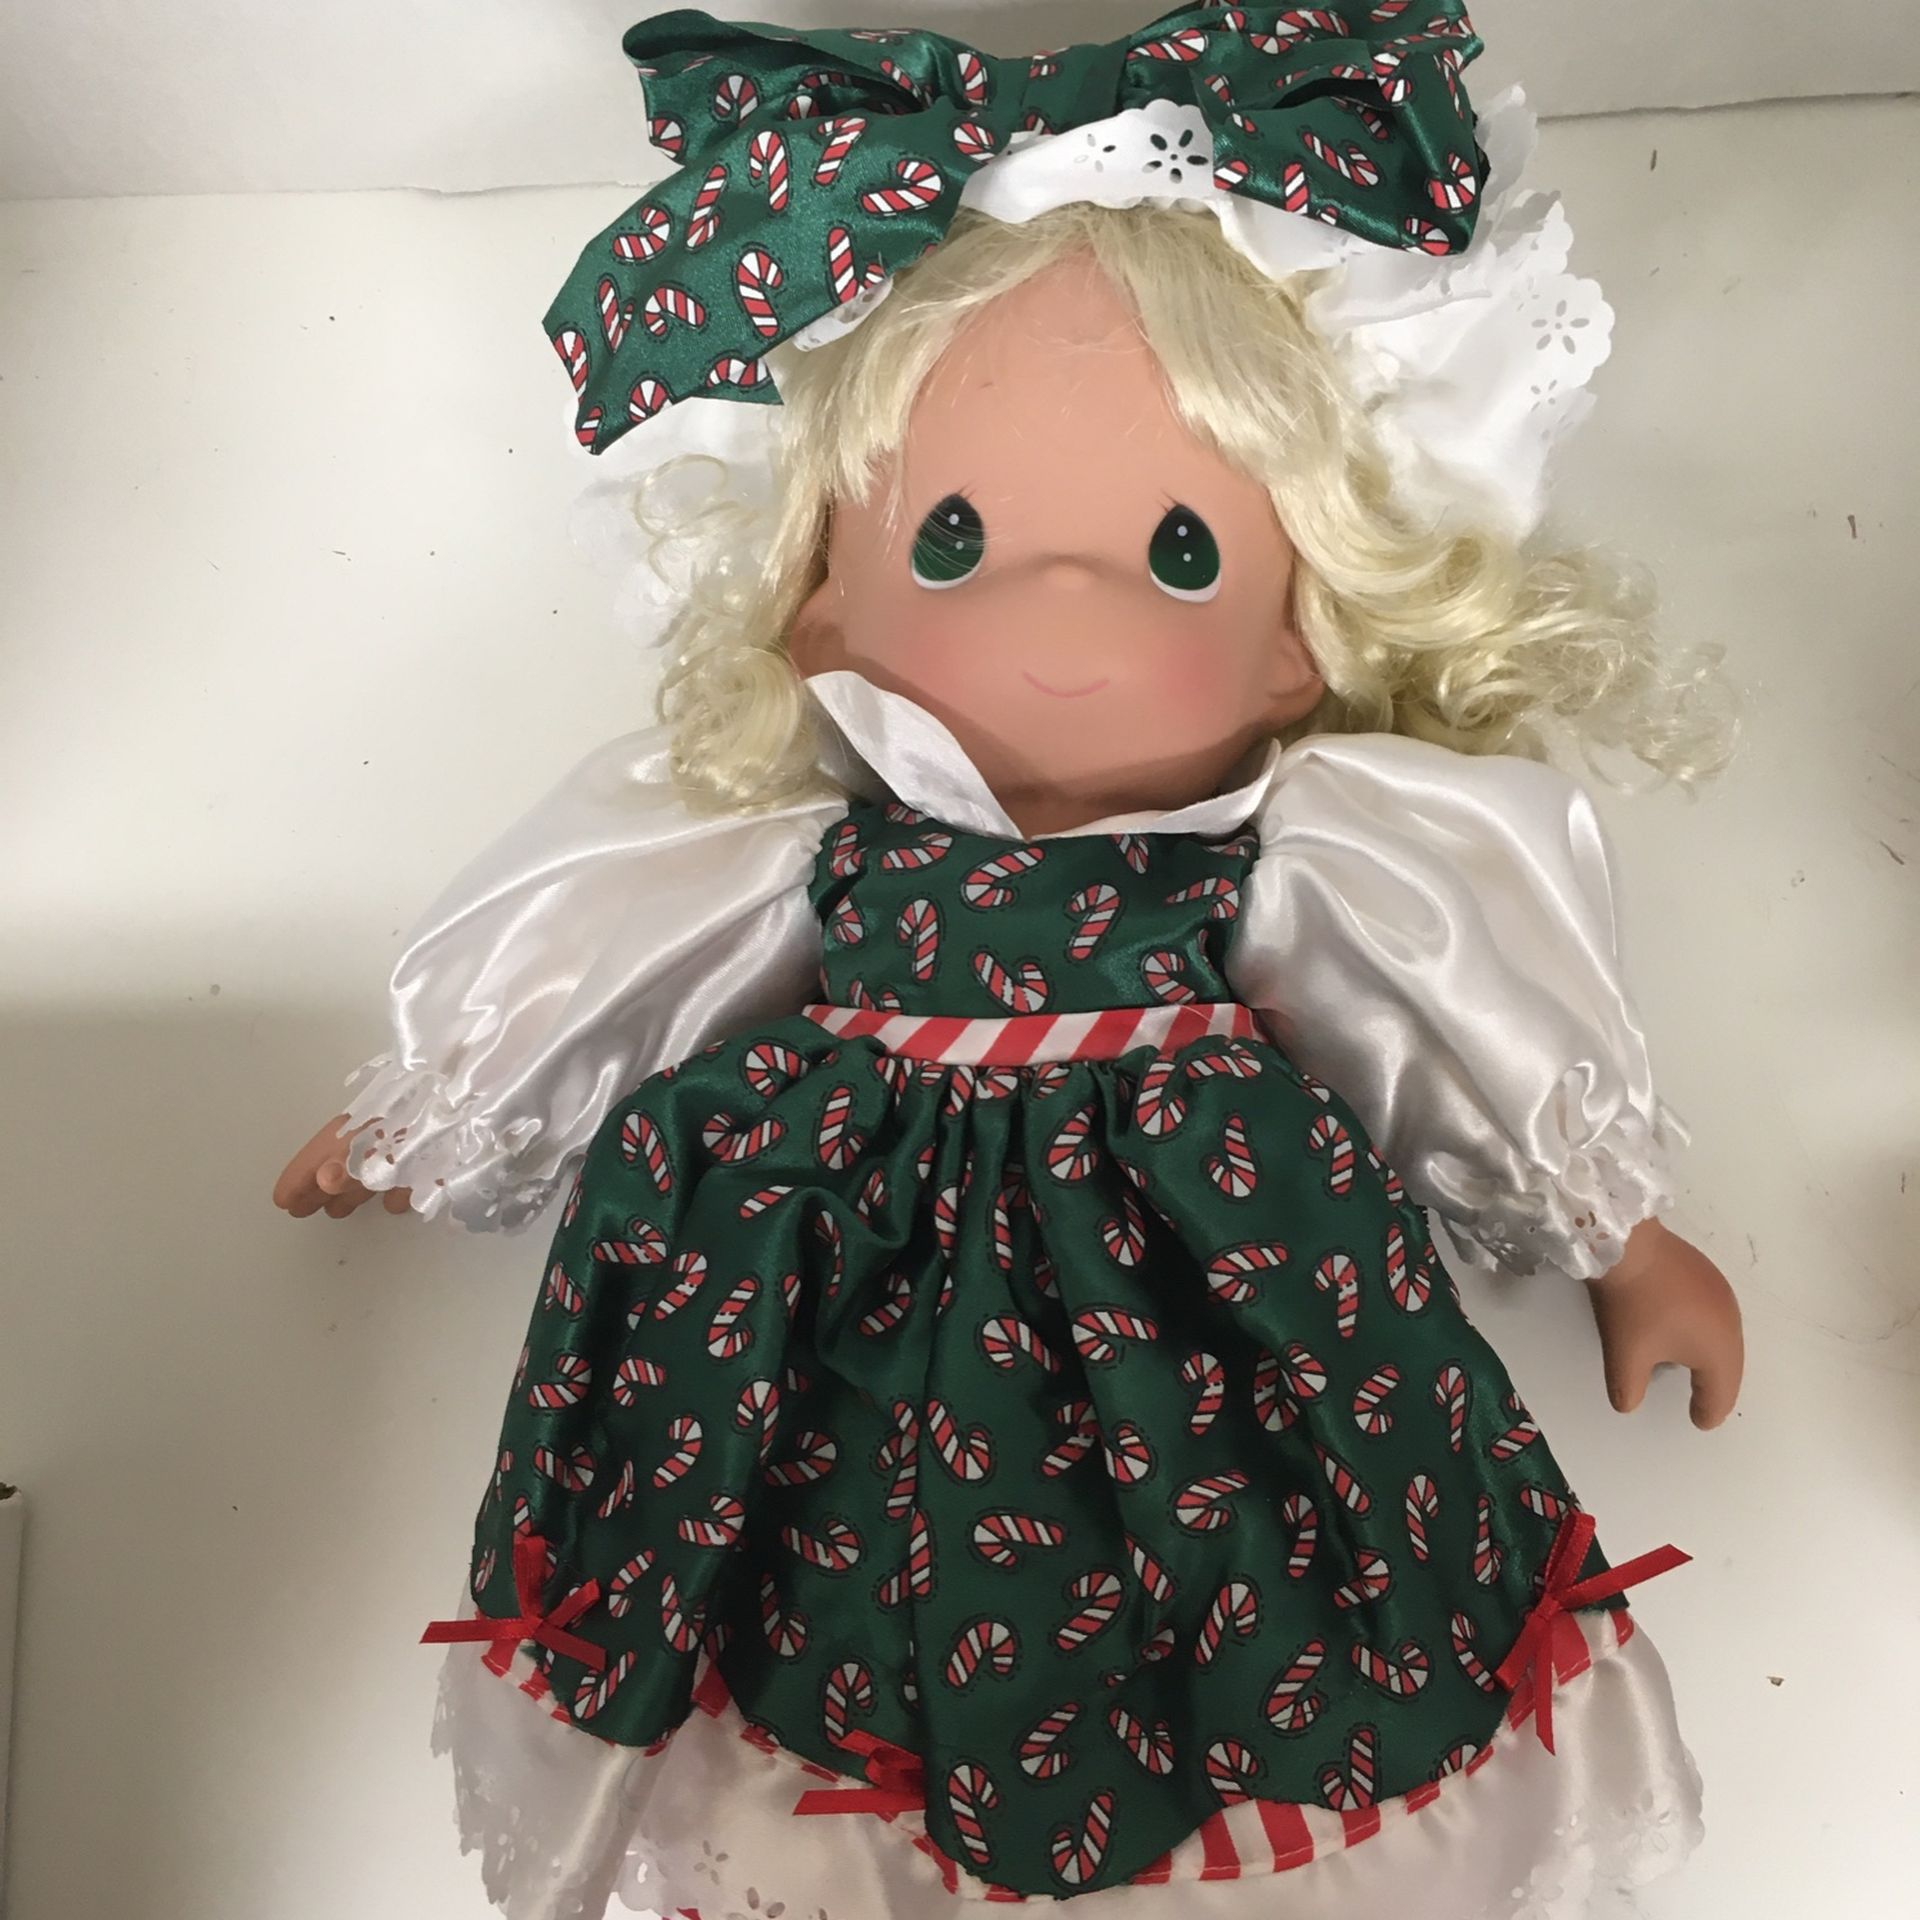 Precious Moments Christmas Doll, 15 Inches